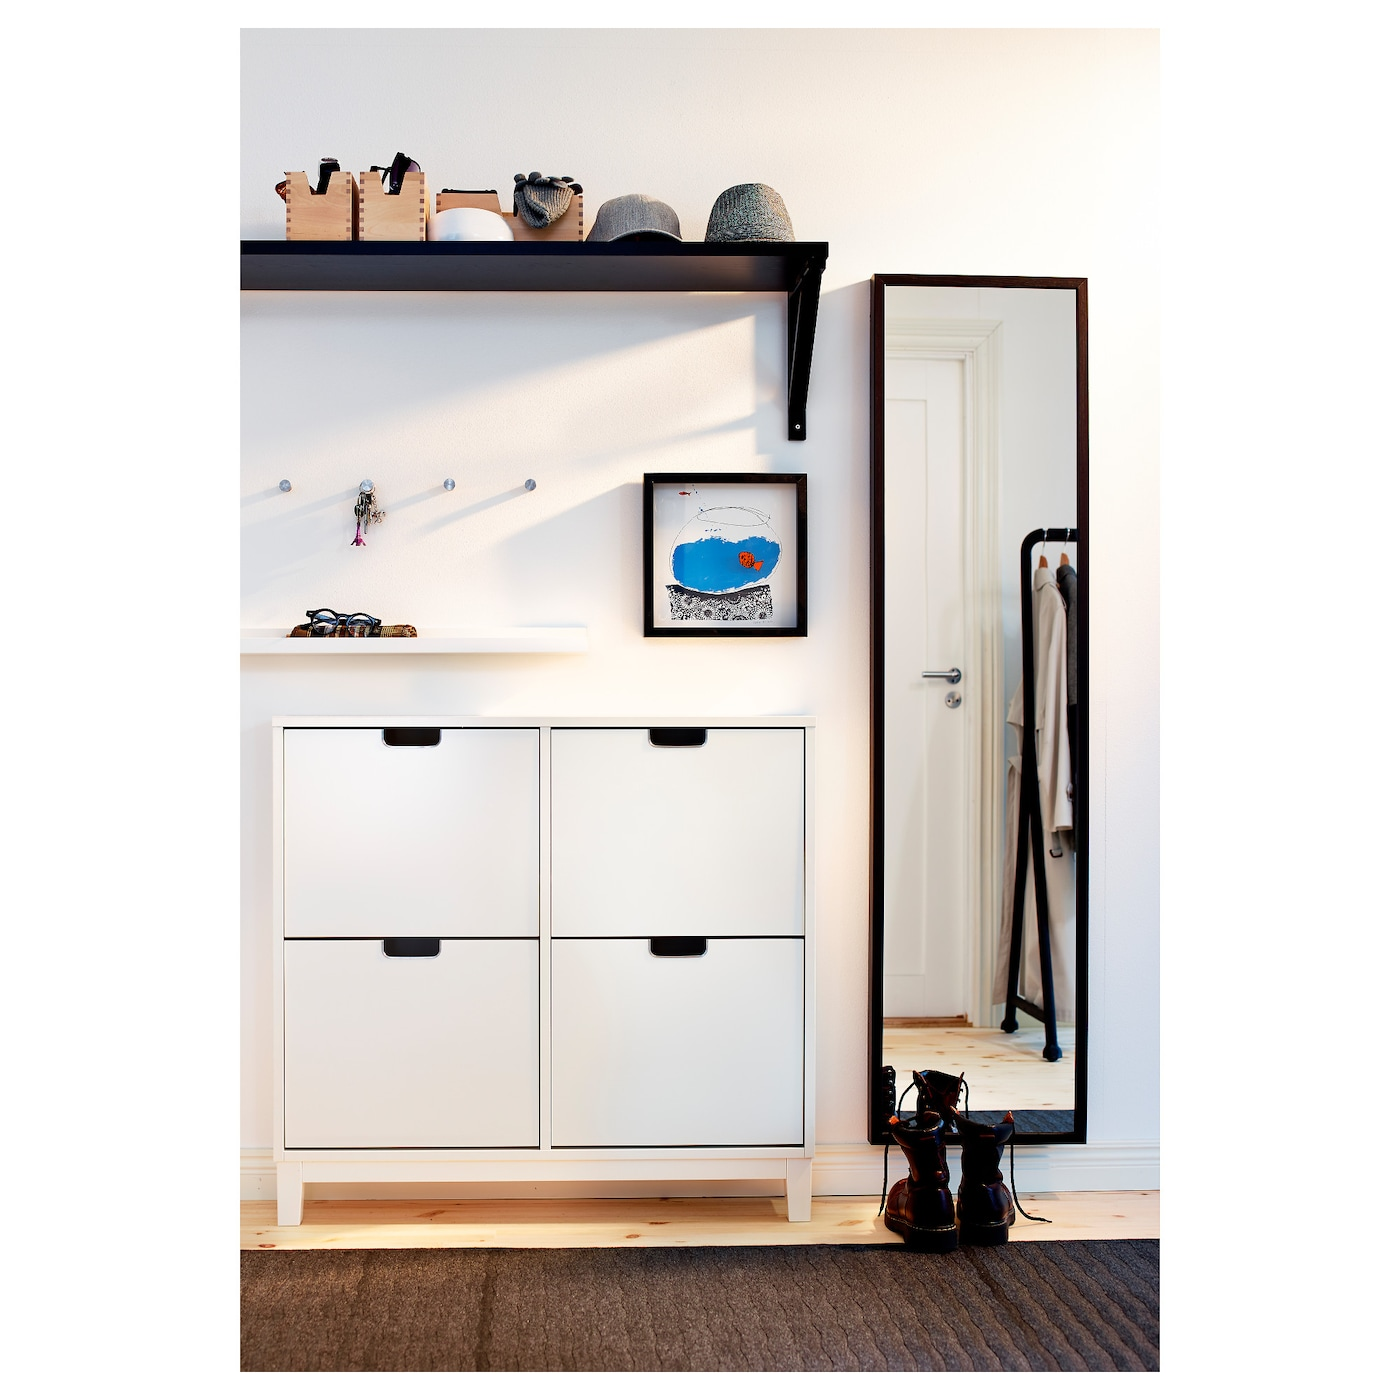 Bathroom Cabinet Organizer Ideas St 196 Ll Shoe Cabinet With 4 Compartments White 96x90 Cm Ikea